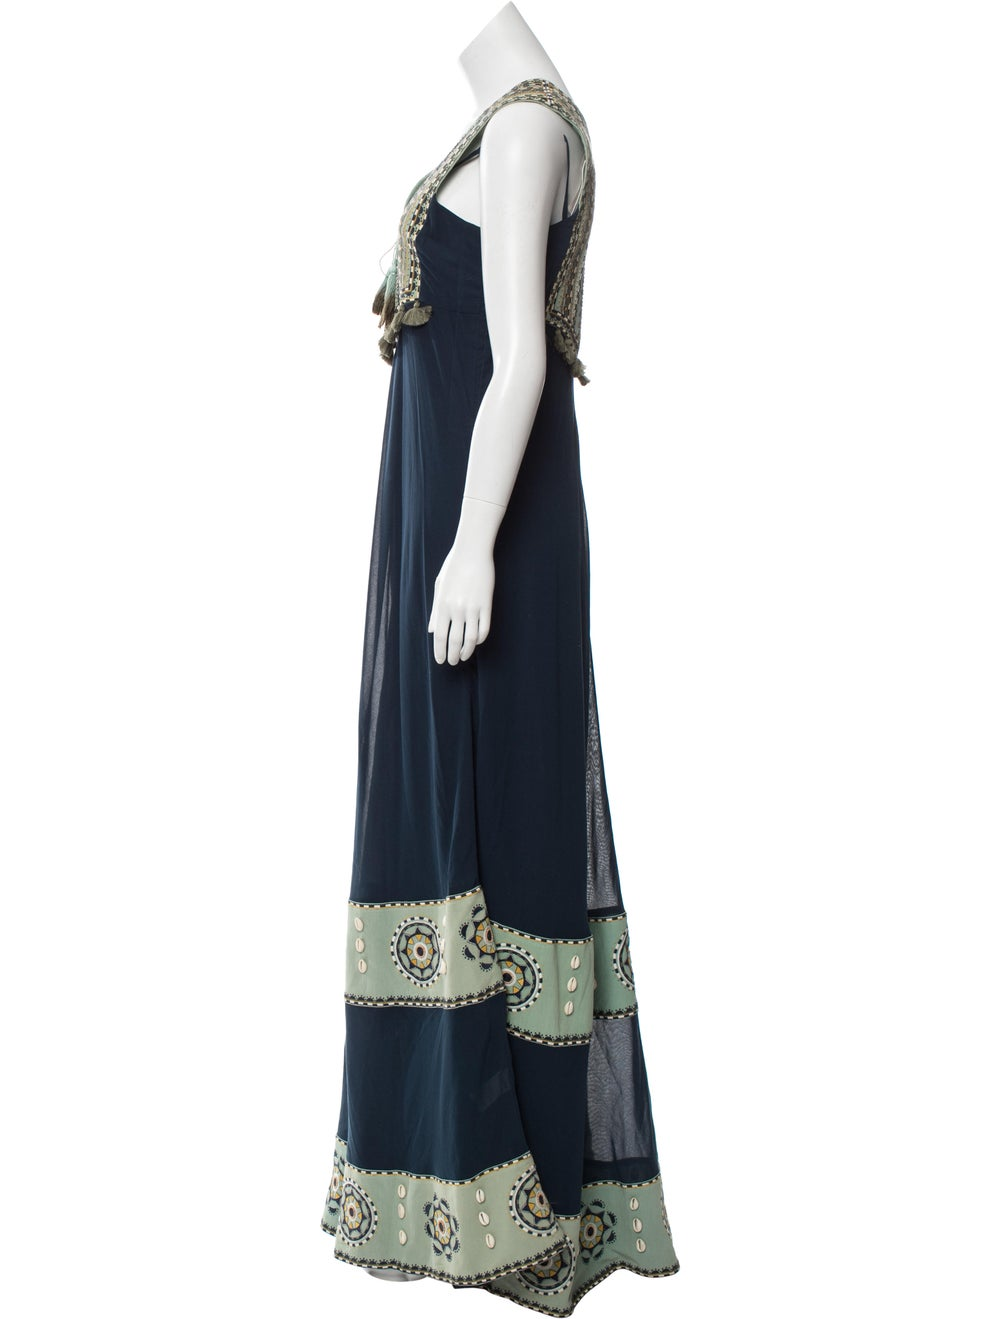 Talitha Poplin Embroidered Dress w/ Tags Blue - image 2